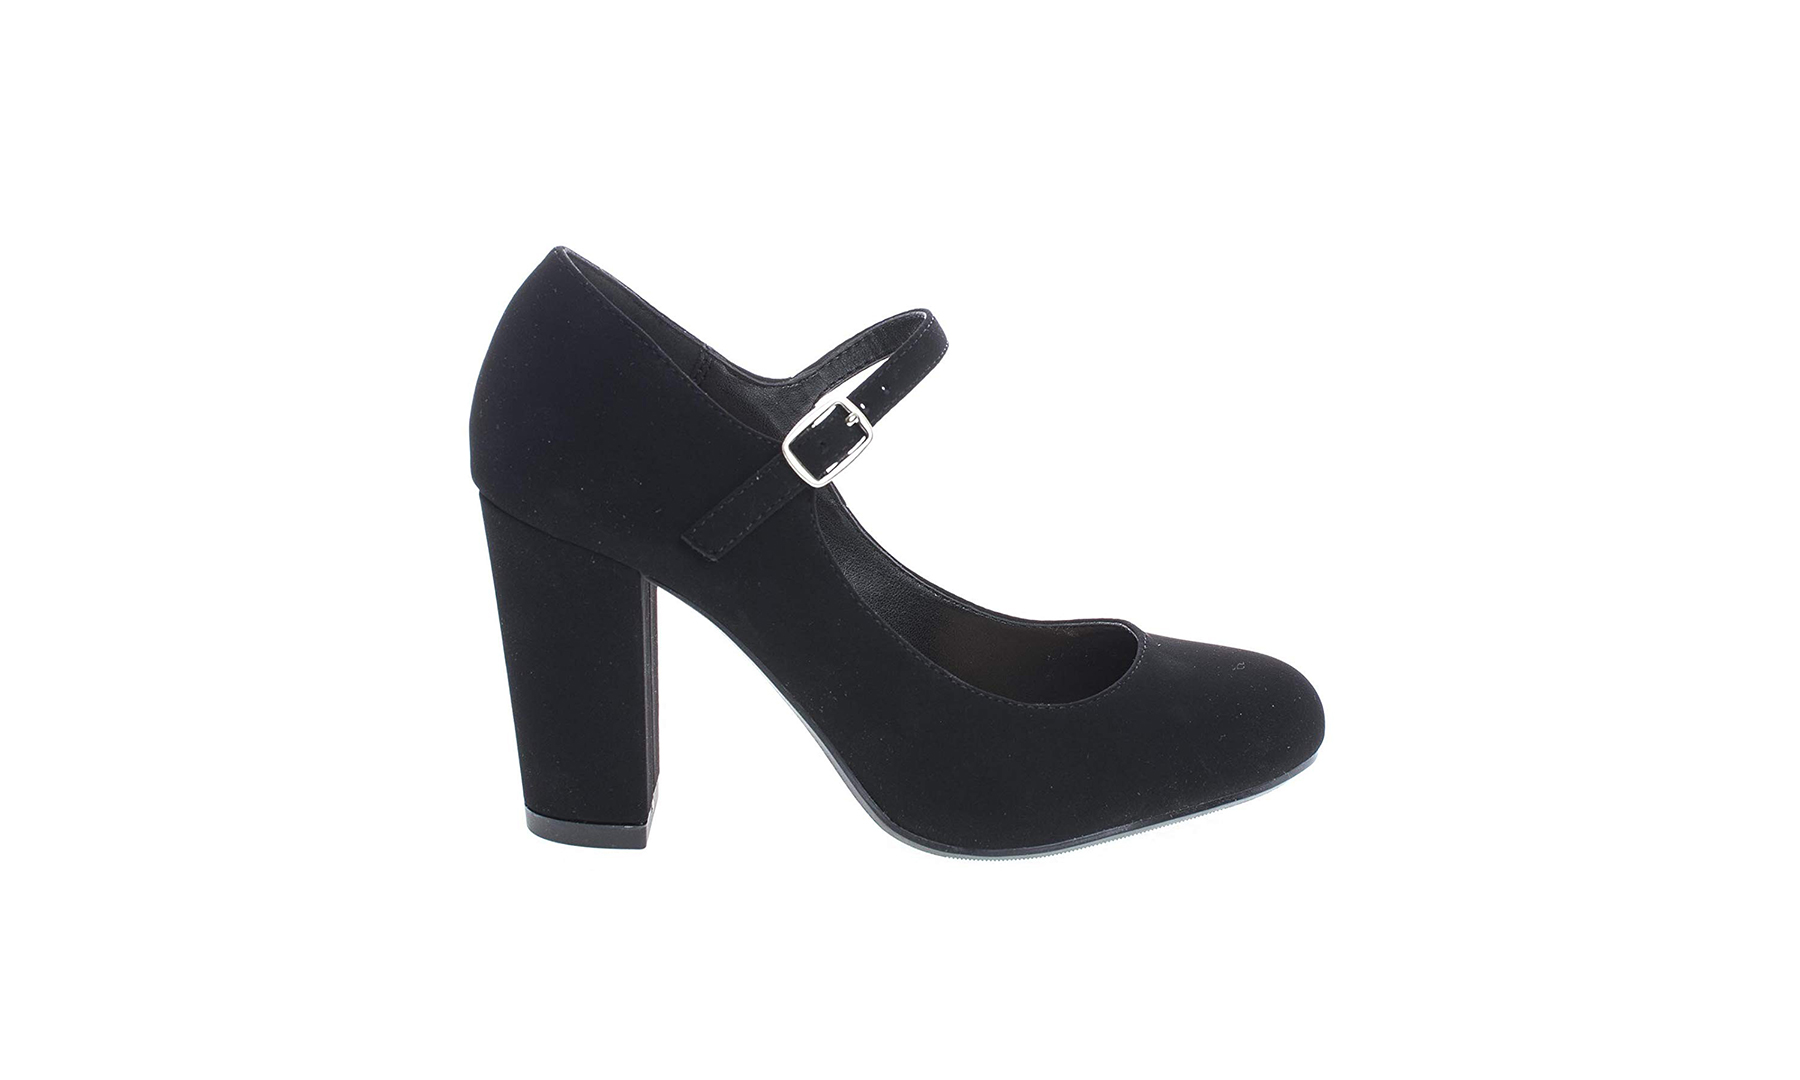 City Classified Closed Toe Ankle Strap Block Heel on Amazon